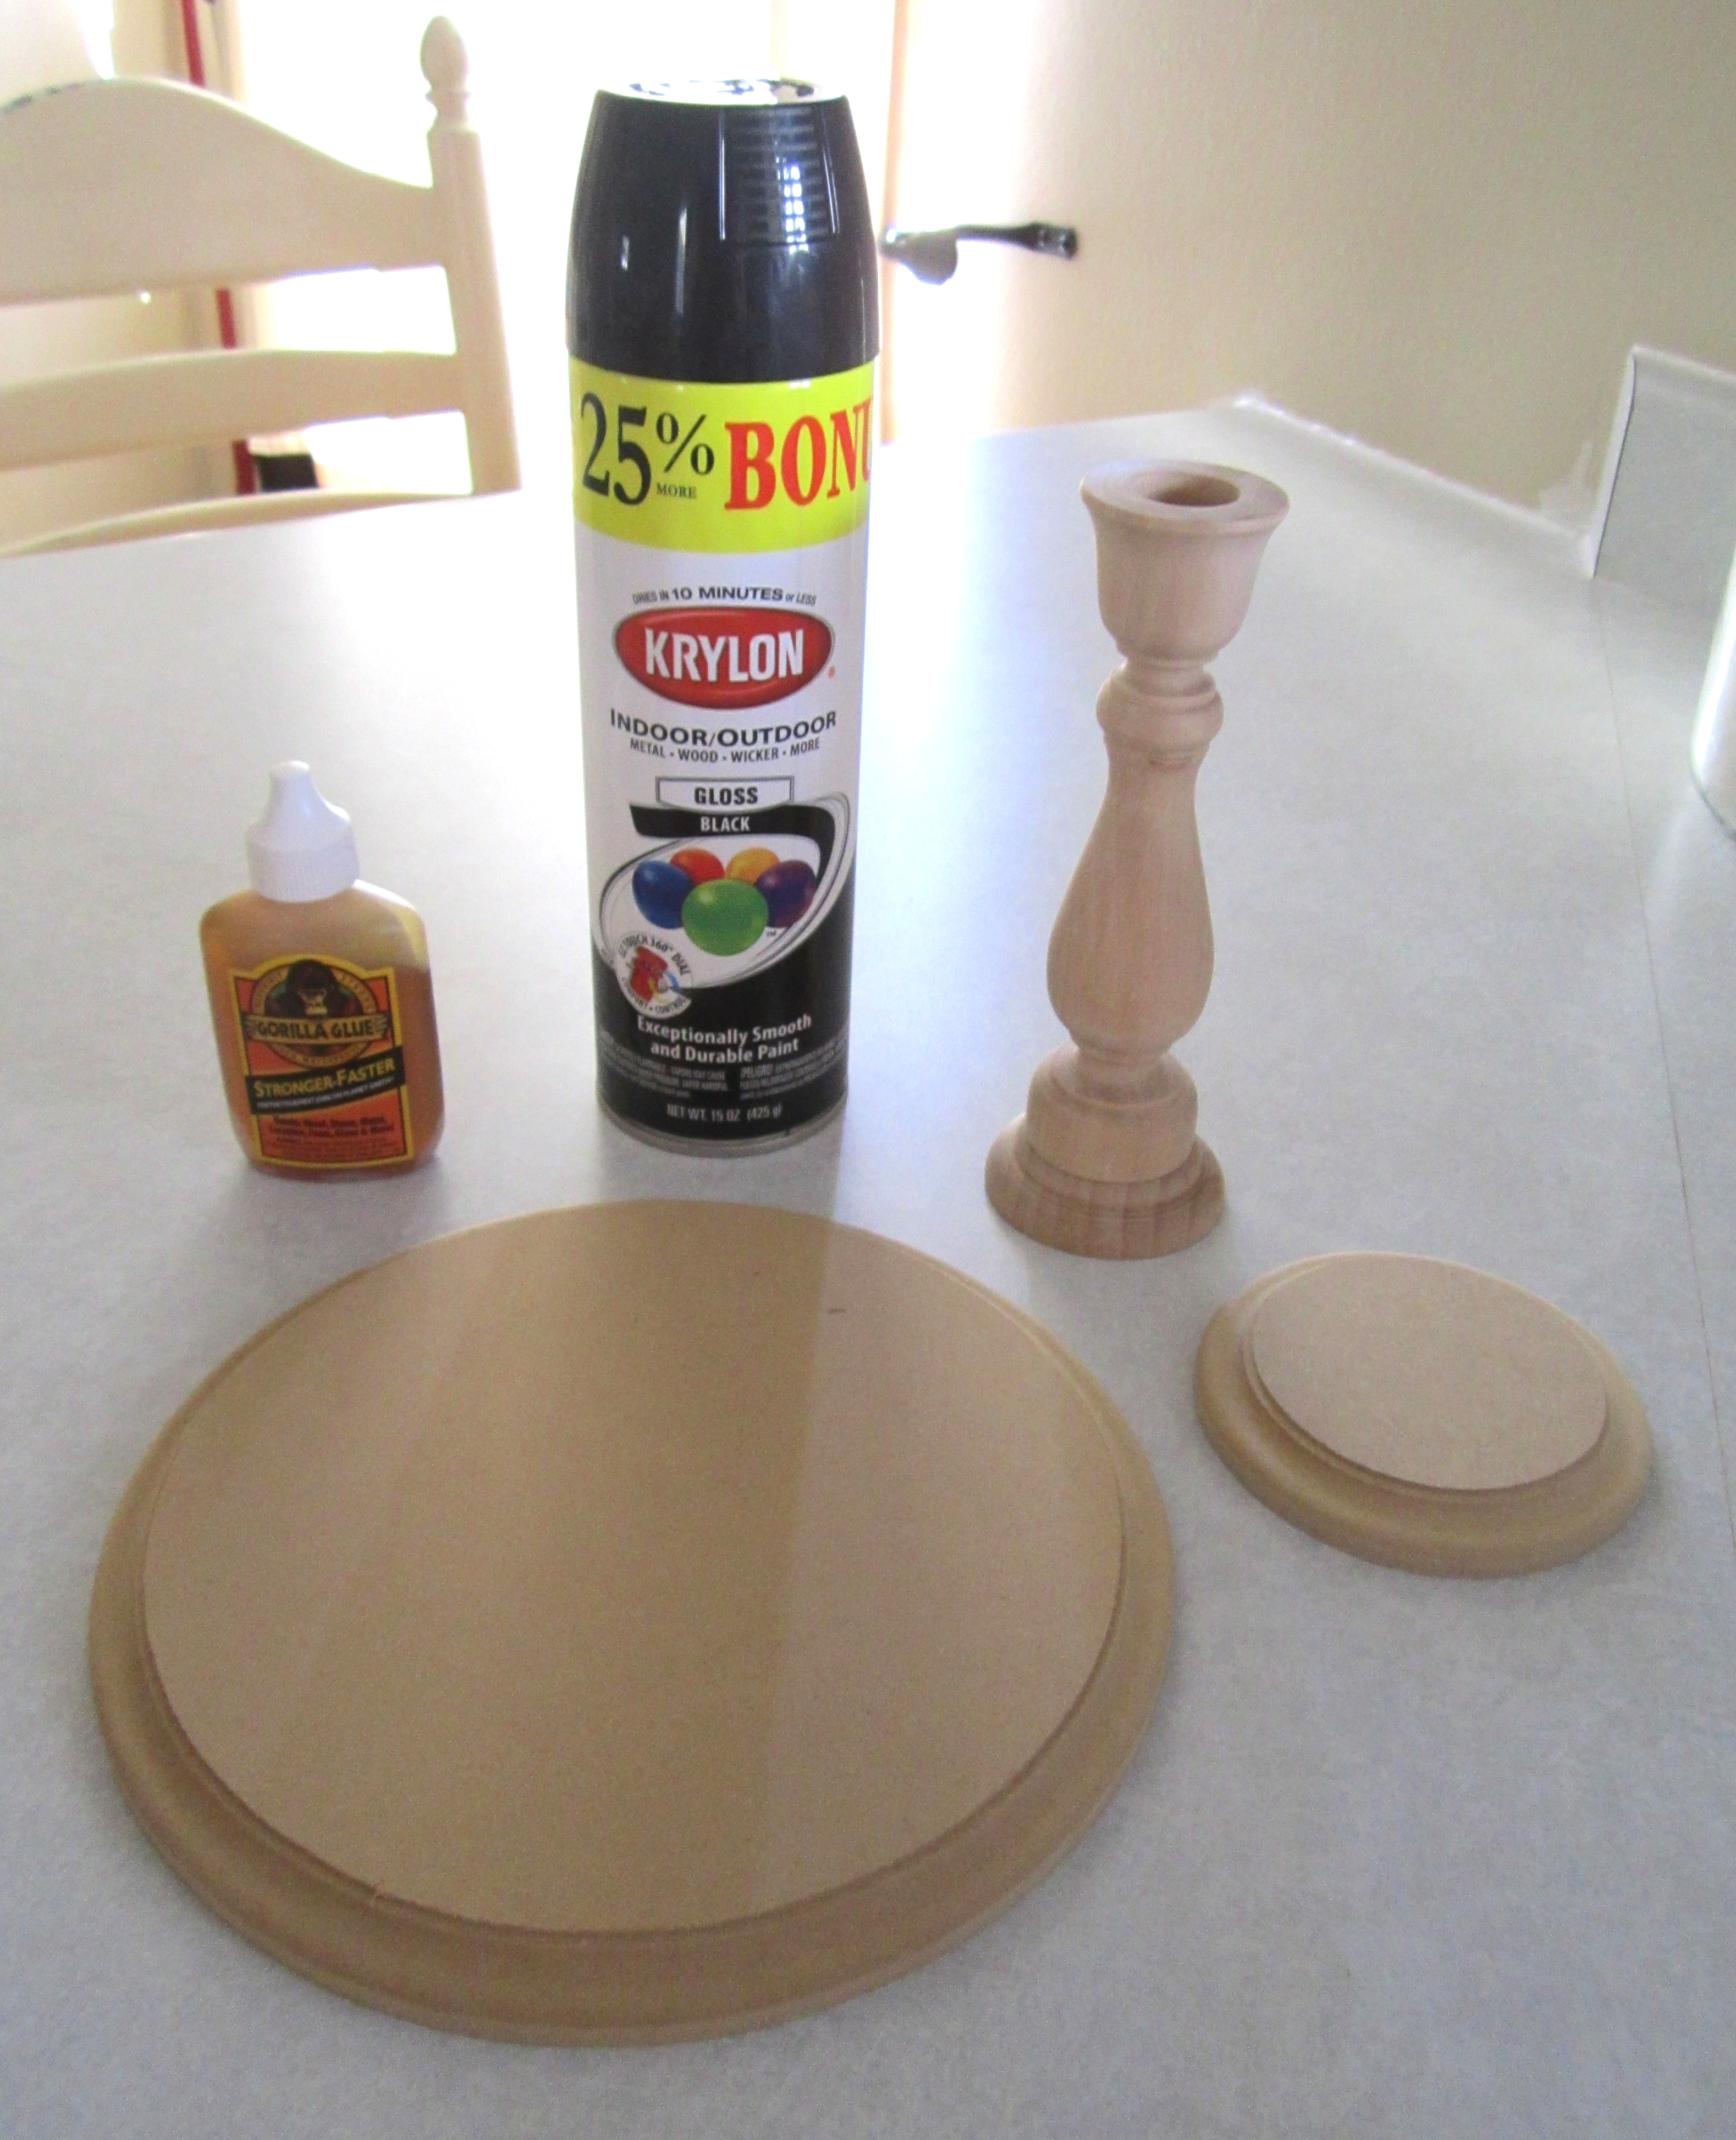 diy candlestick cake stand full tutorial a blissful nest. Black Bedroom Furniture Sets. Home Design Ideas